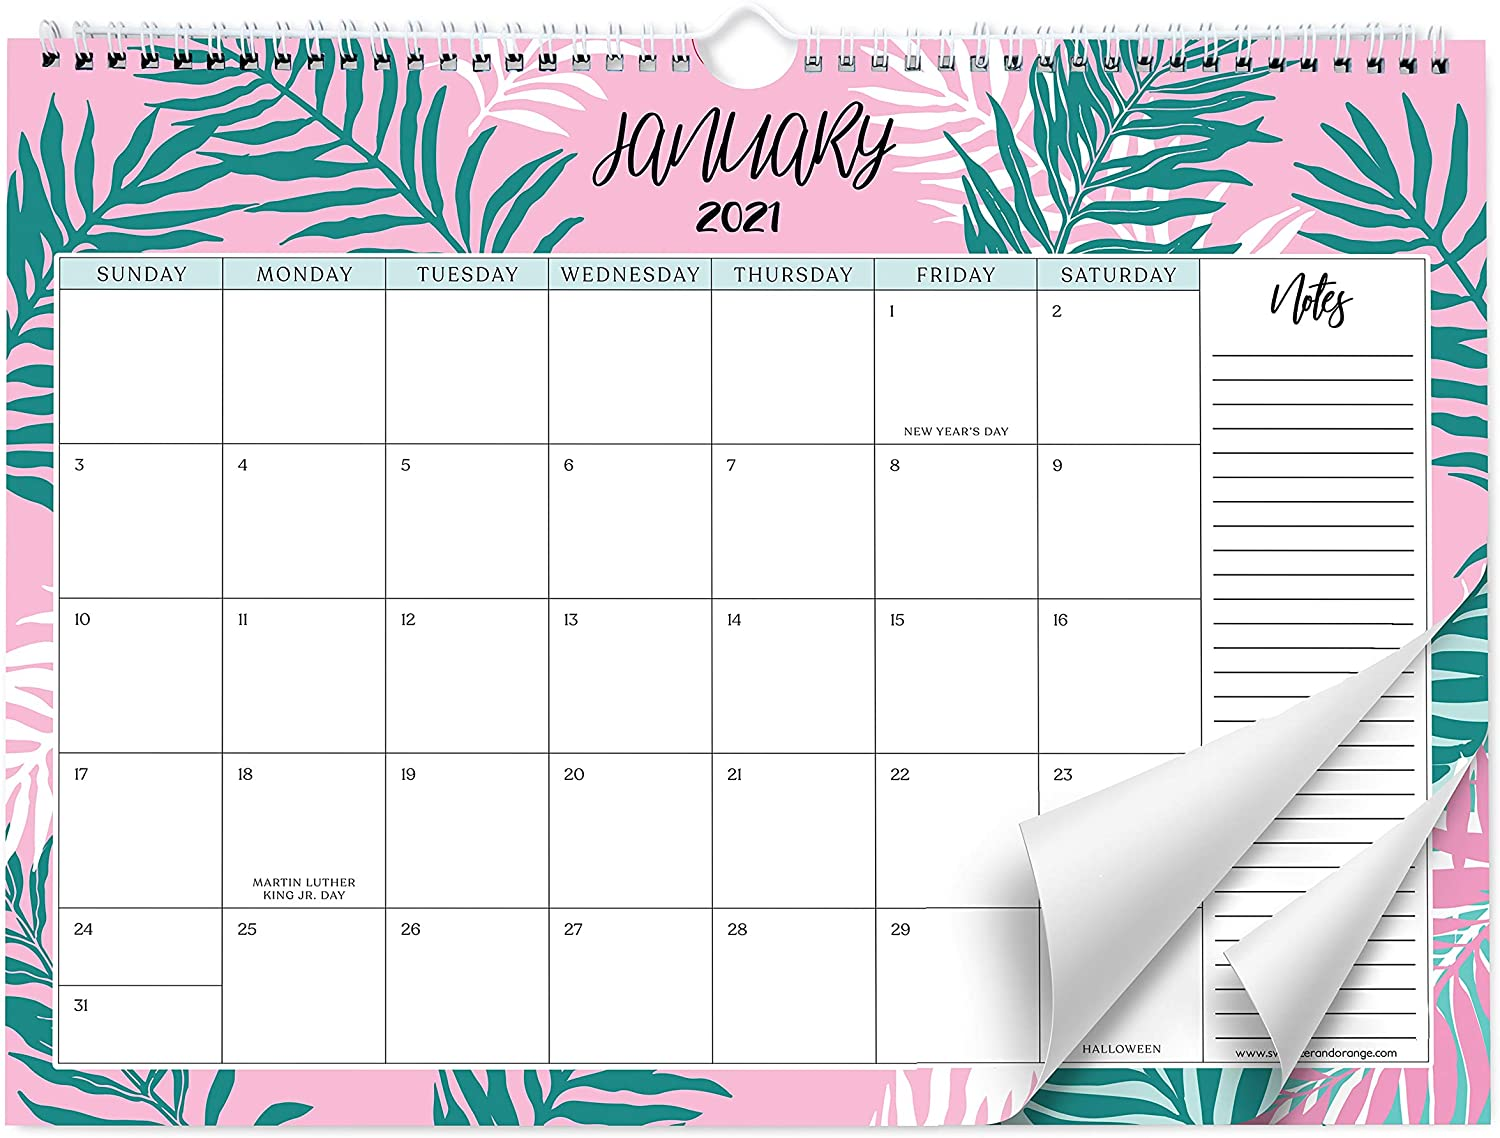 Sweetzer & Orange 15 Calendar. 15 Month Office or Family Wall Calendar  15-Dec 15 - Leafy Design Monthly Planner, Daily Wall Calendars for  Office